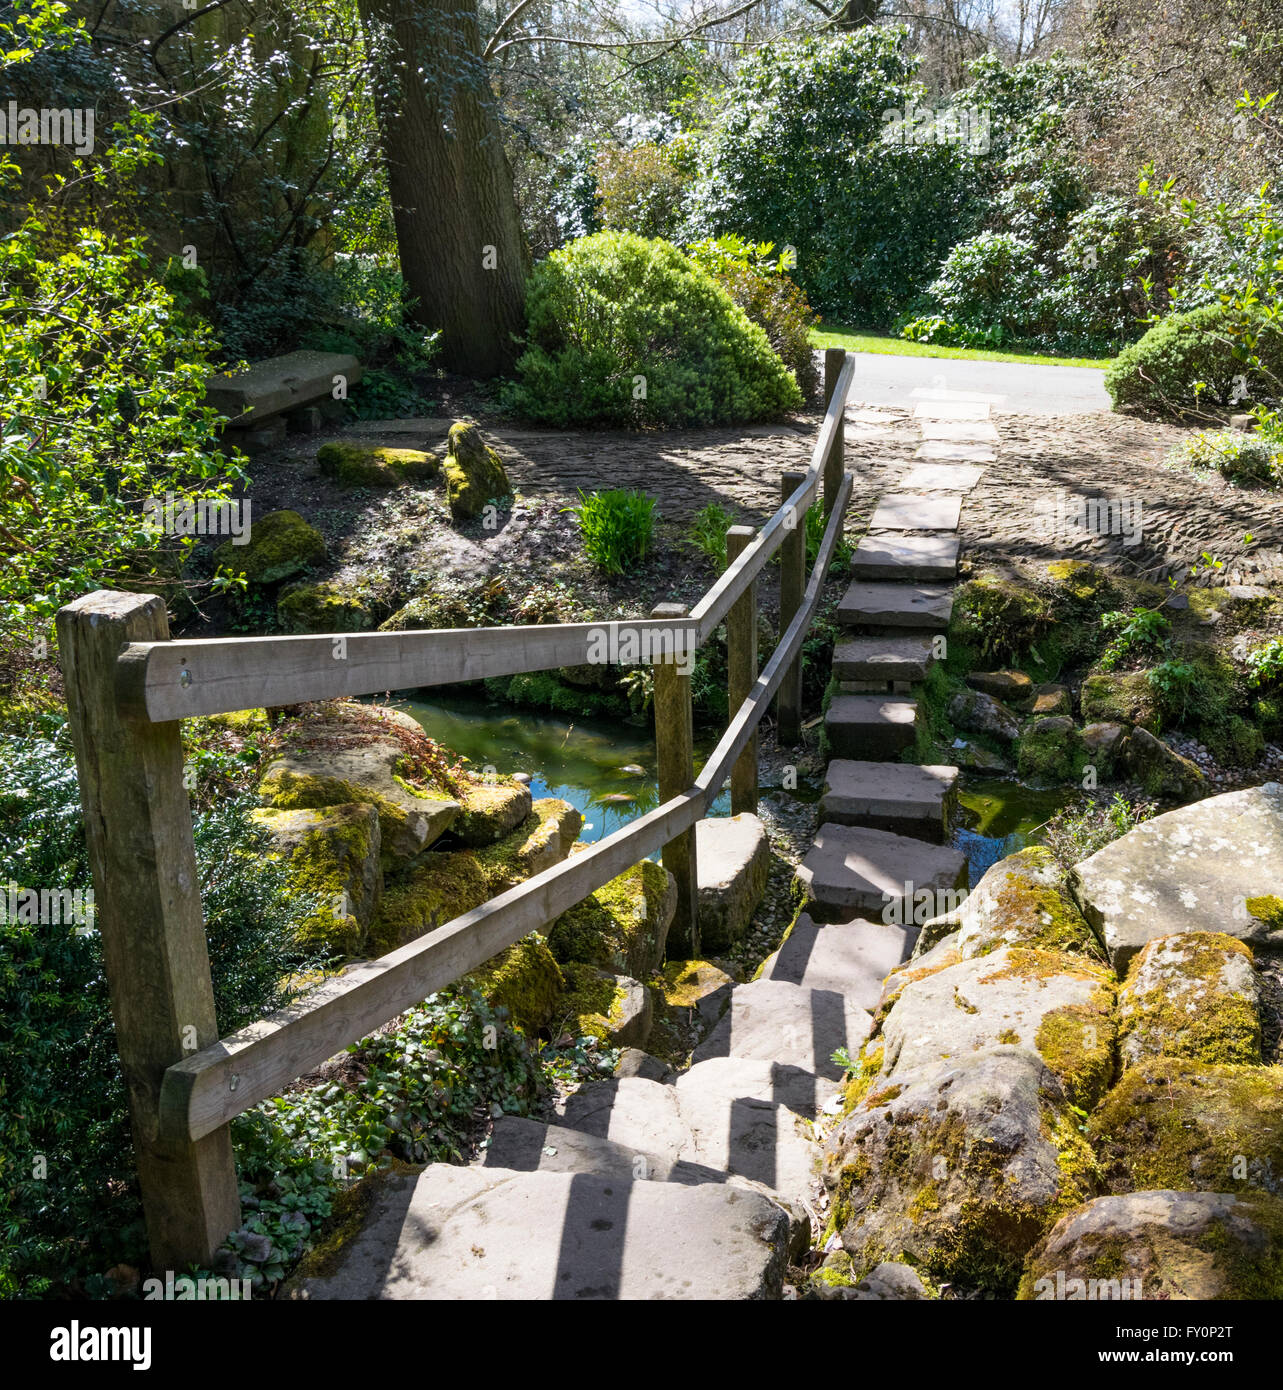 view of the stream and stepping stone path in the friends garden